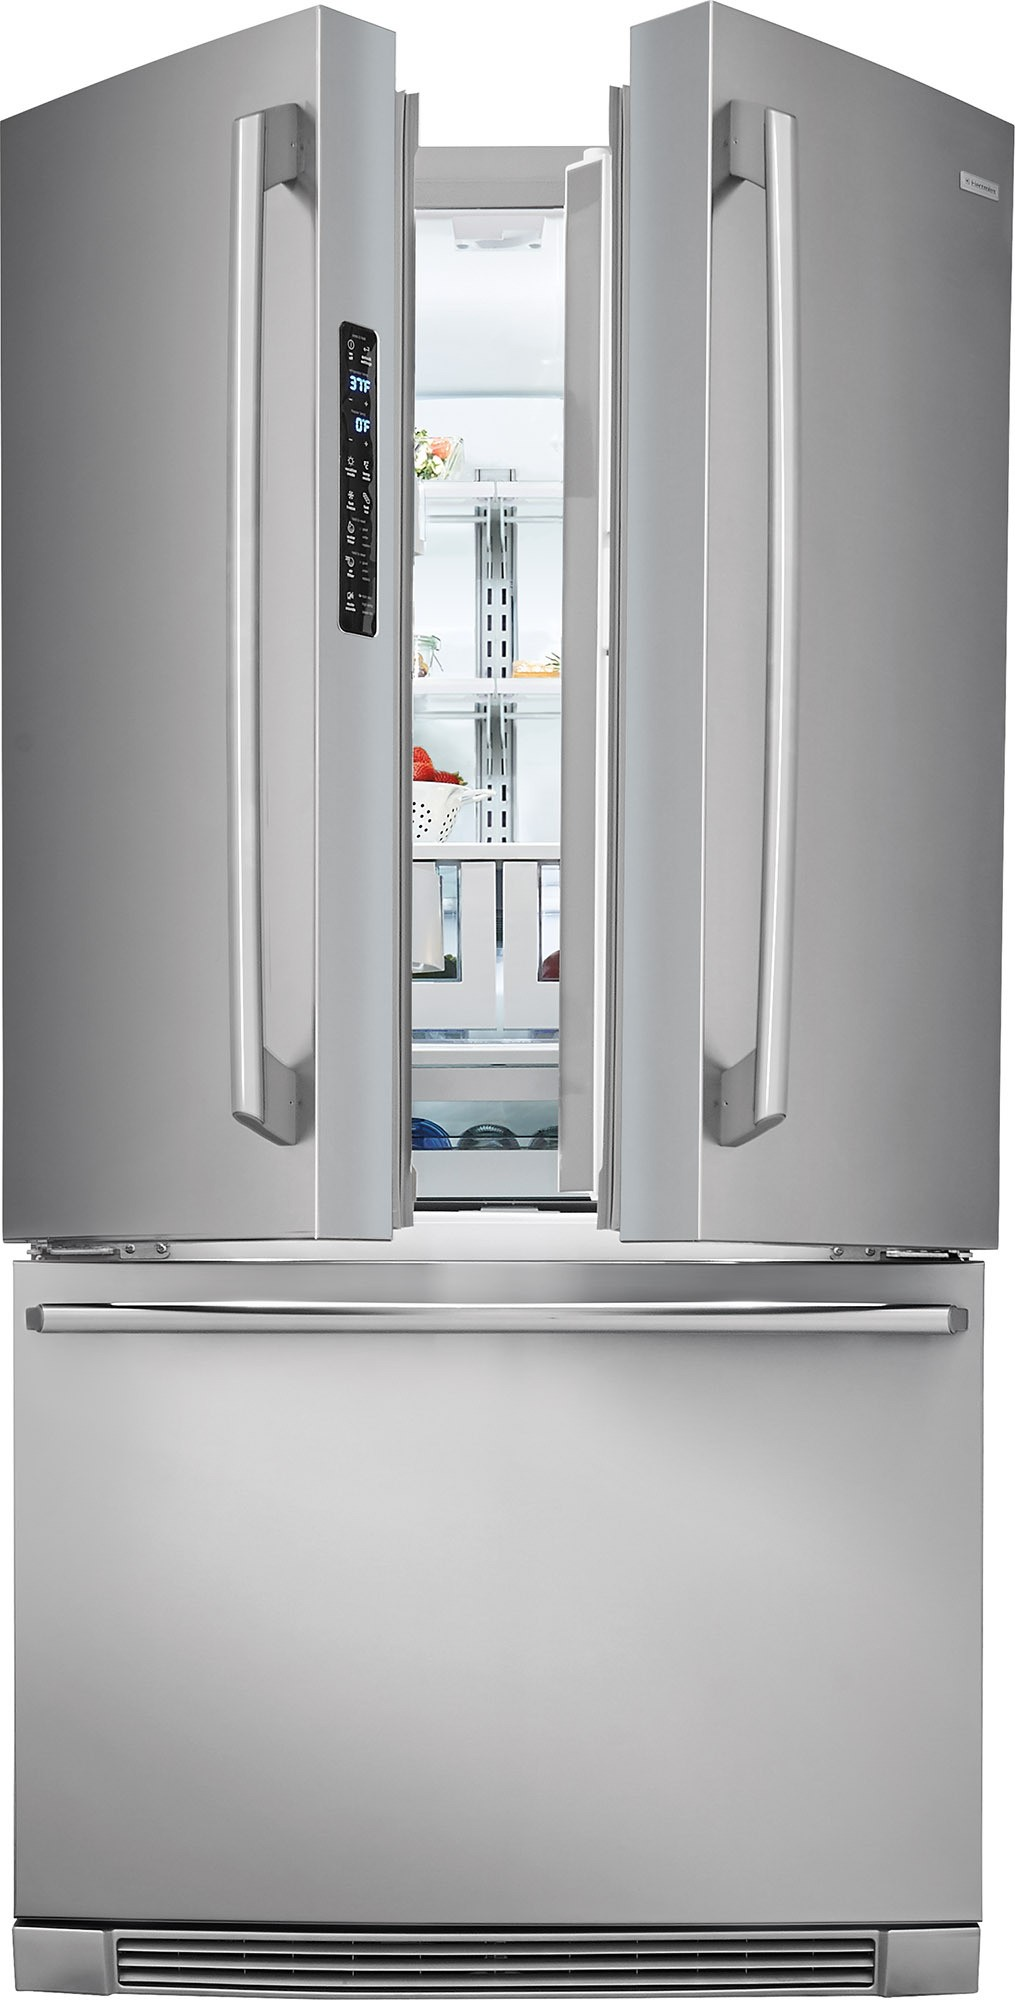 electrolux refrigerator white. feature electrolux refrigerator white